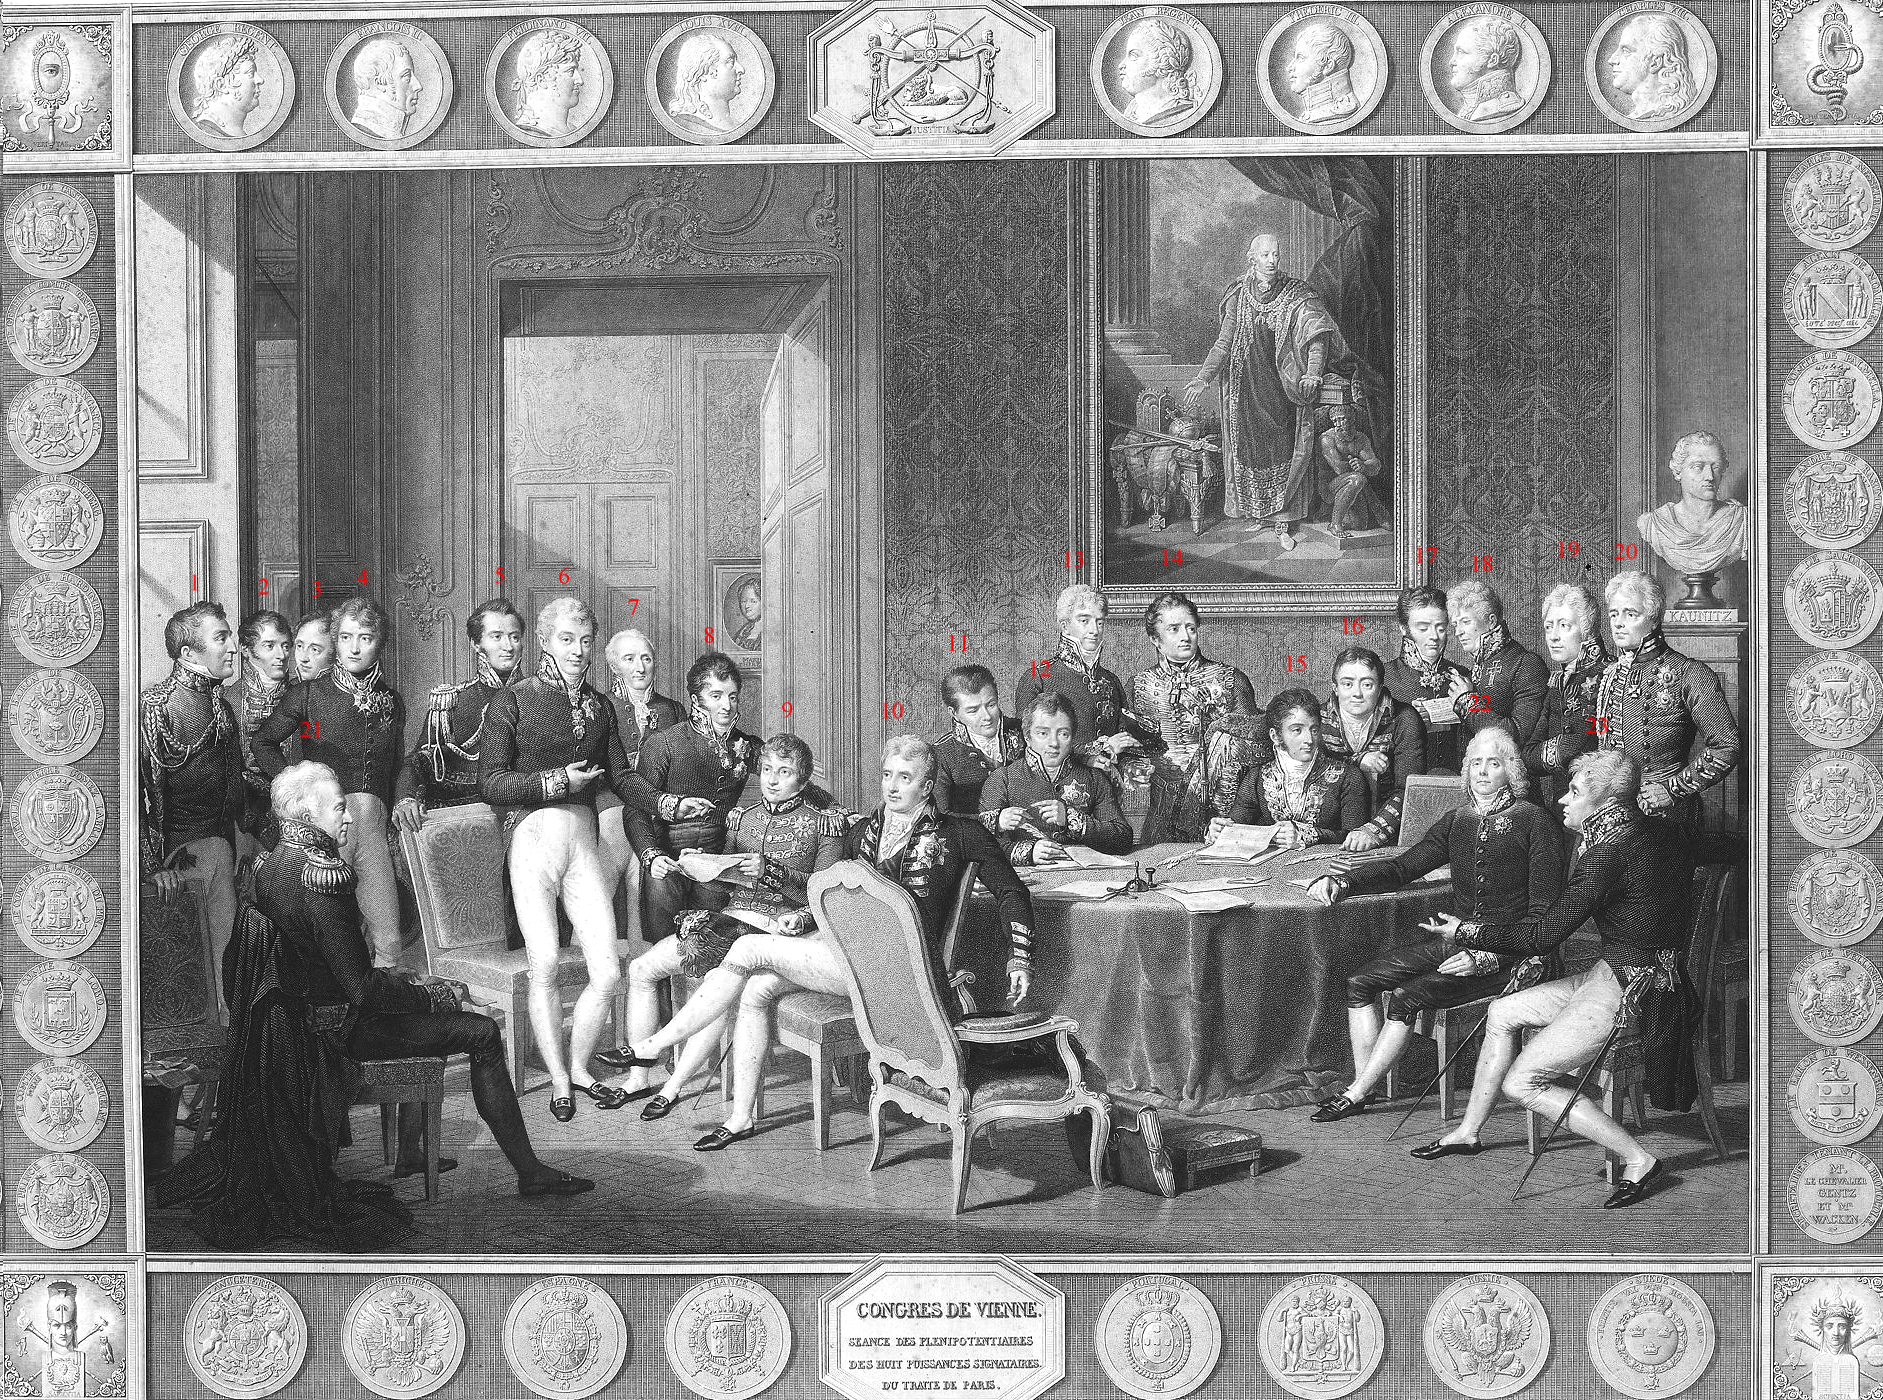 Delegates Congress of Vienna in a contemporary engraving by Jean Godefroy after the painting by Jean-Baptiste Isabey.